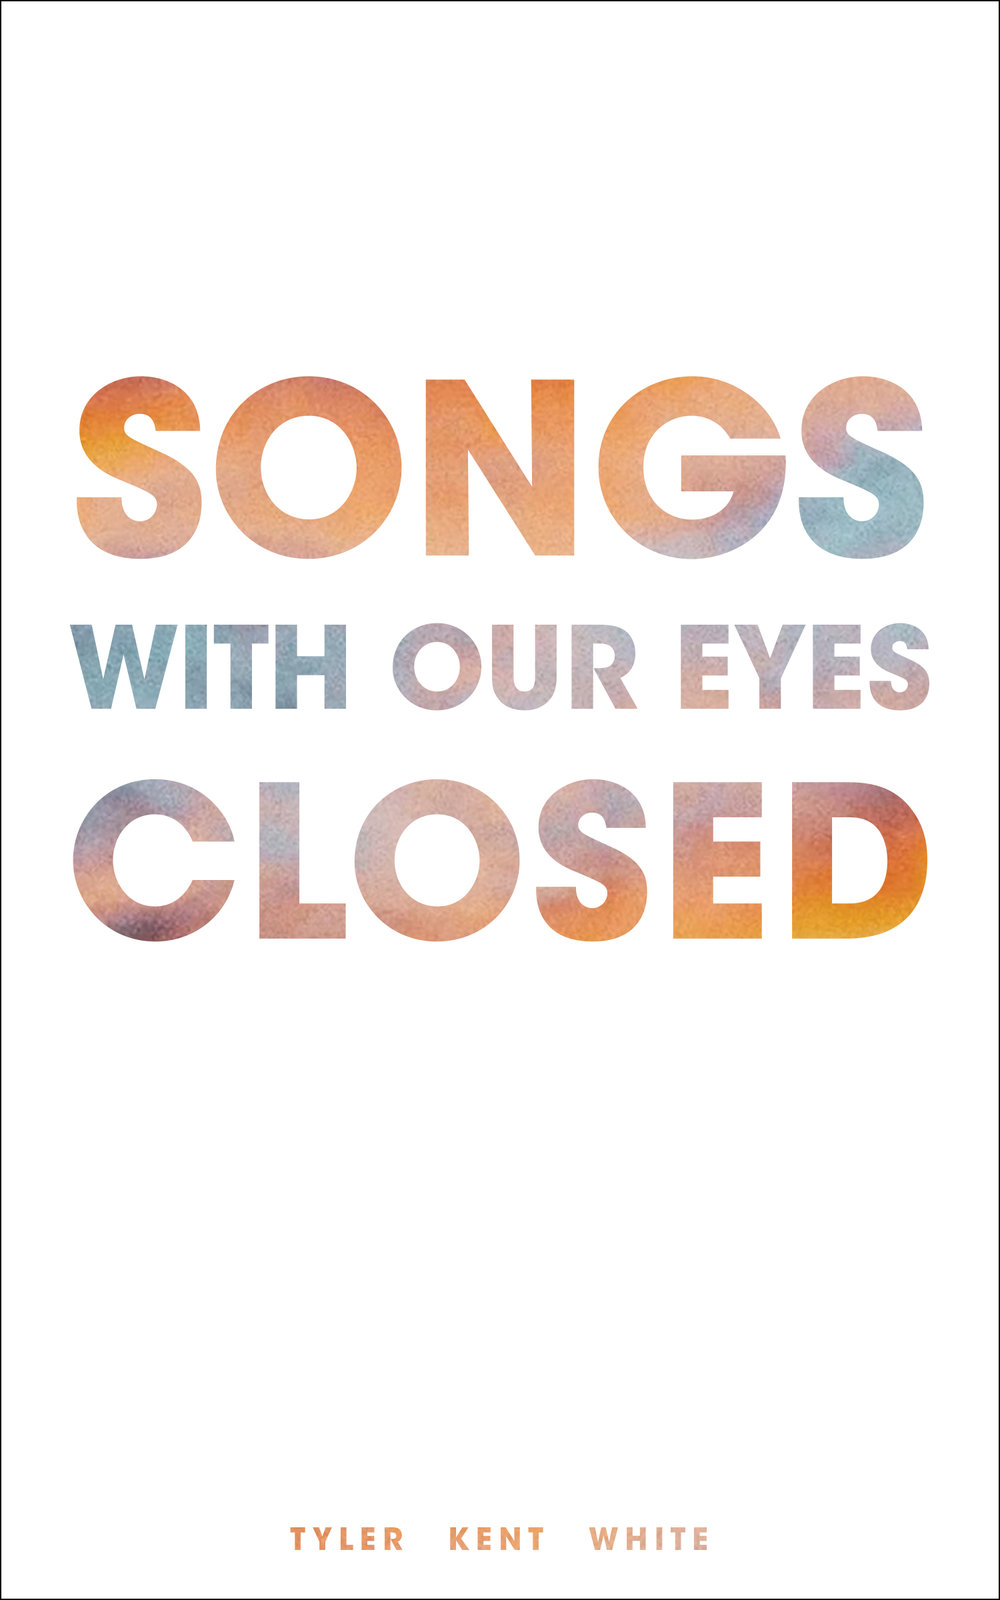 Cover - Songs with Our Eyes Closed.jpg